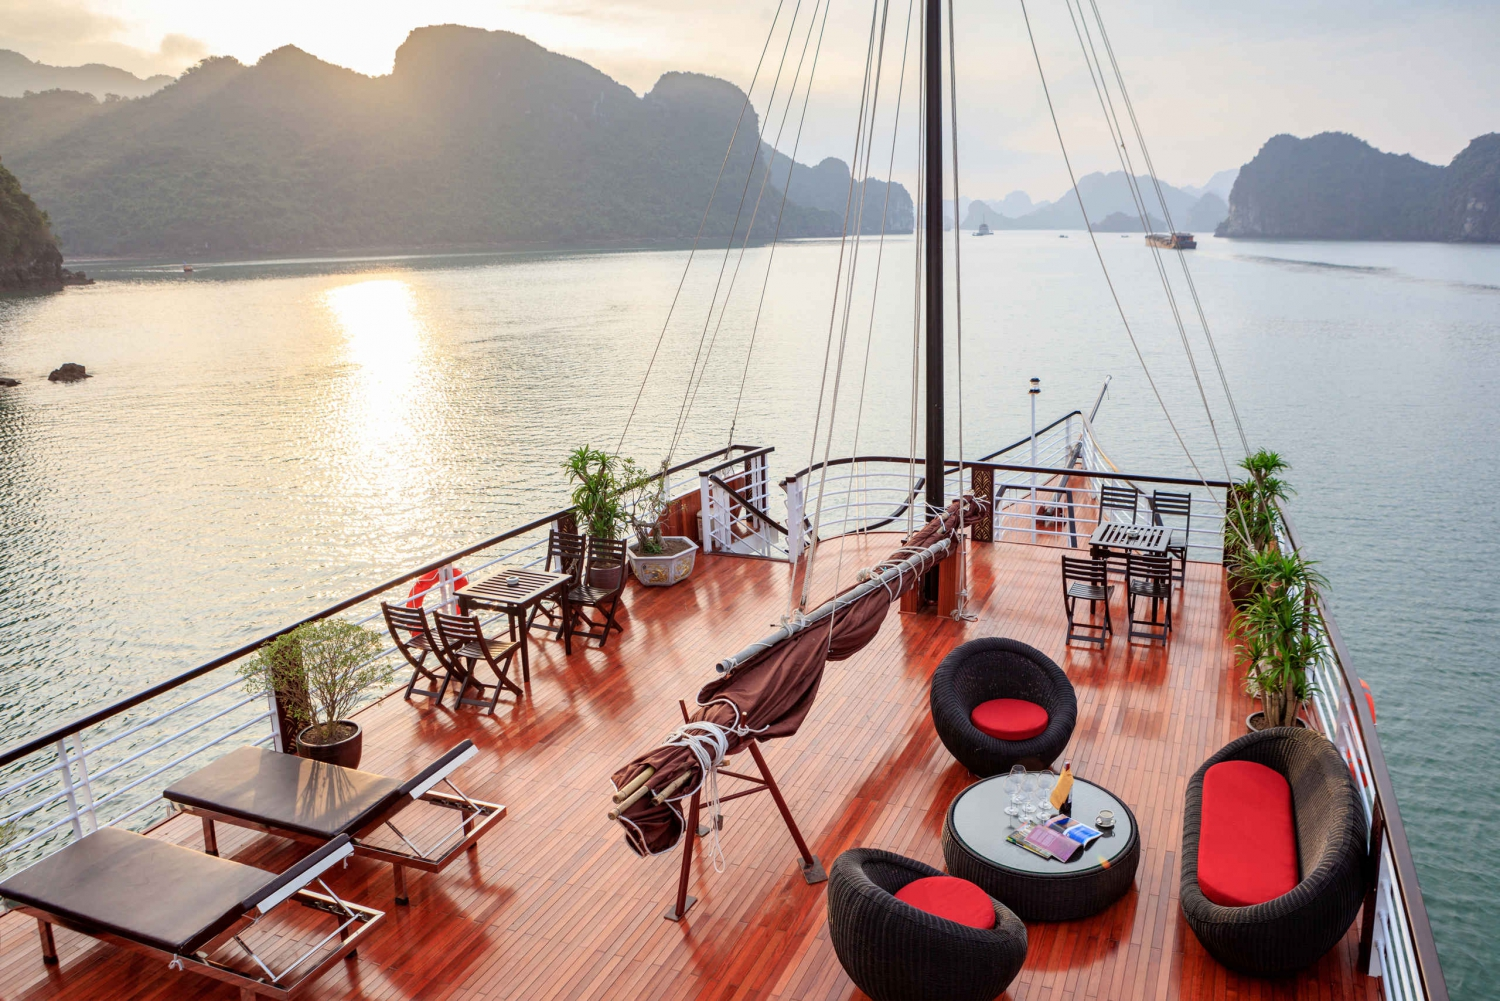 From Hanoi: 8-Hour Halong & Lan Ha Bay Luxury Day Cruise